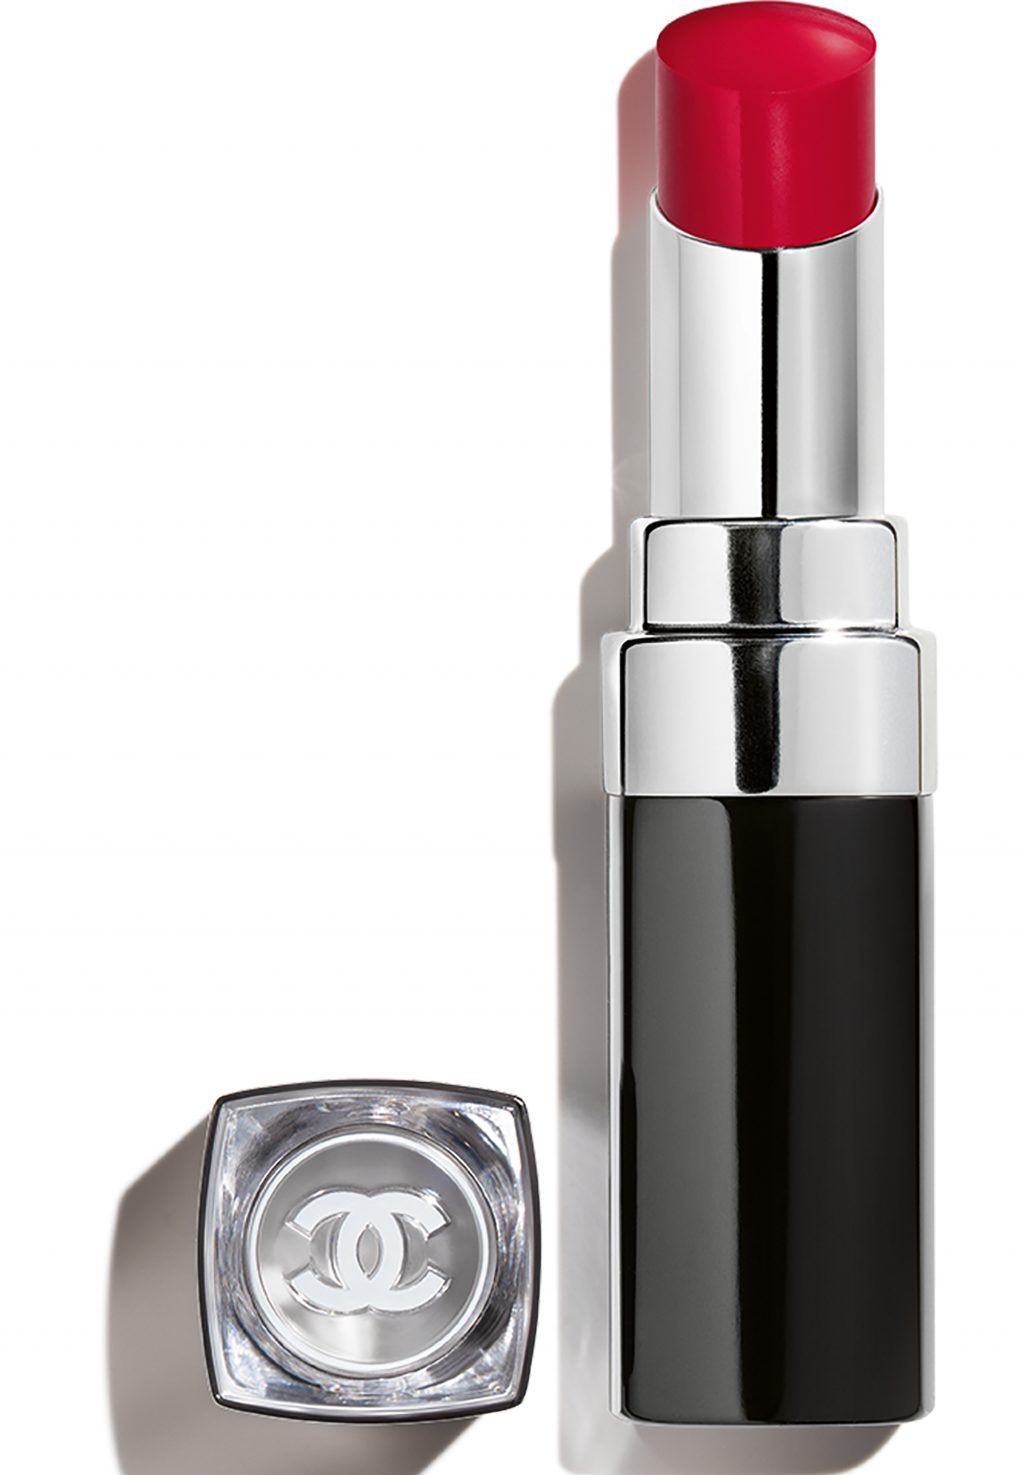 thỏi son Chanel Rouge Coco